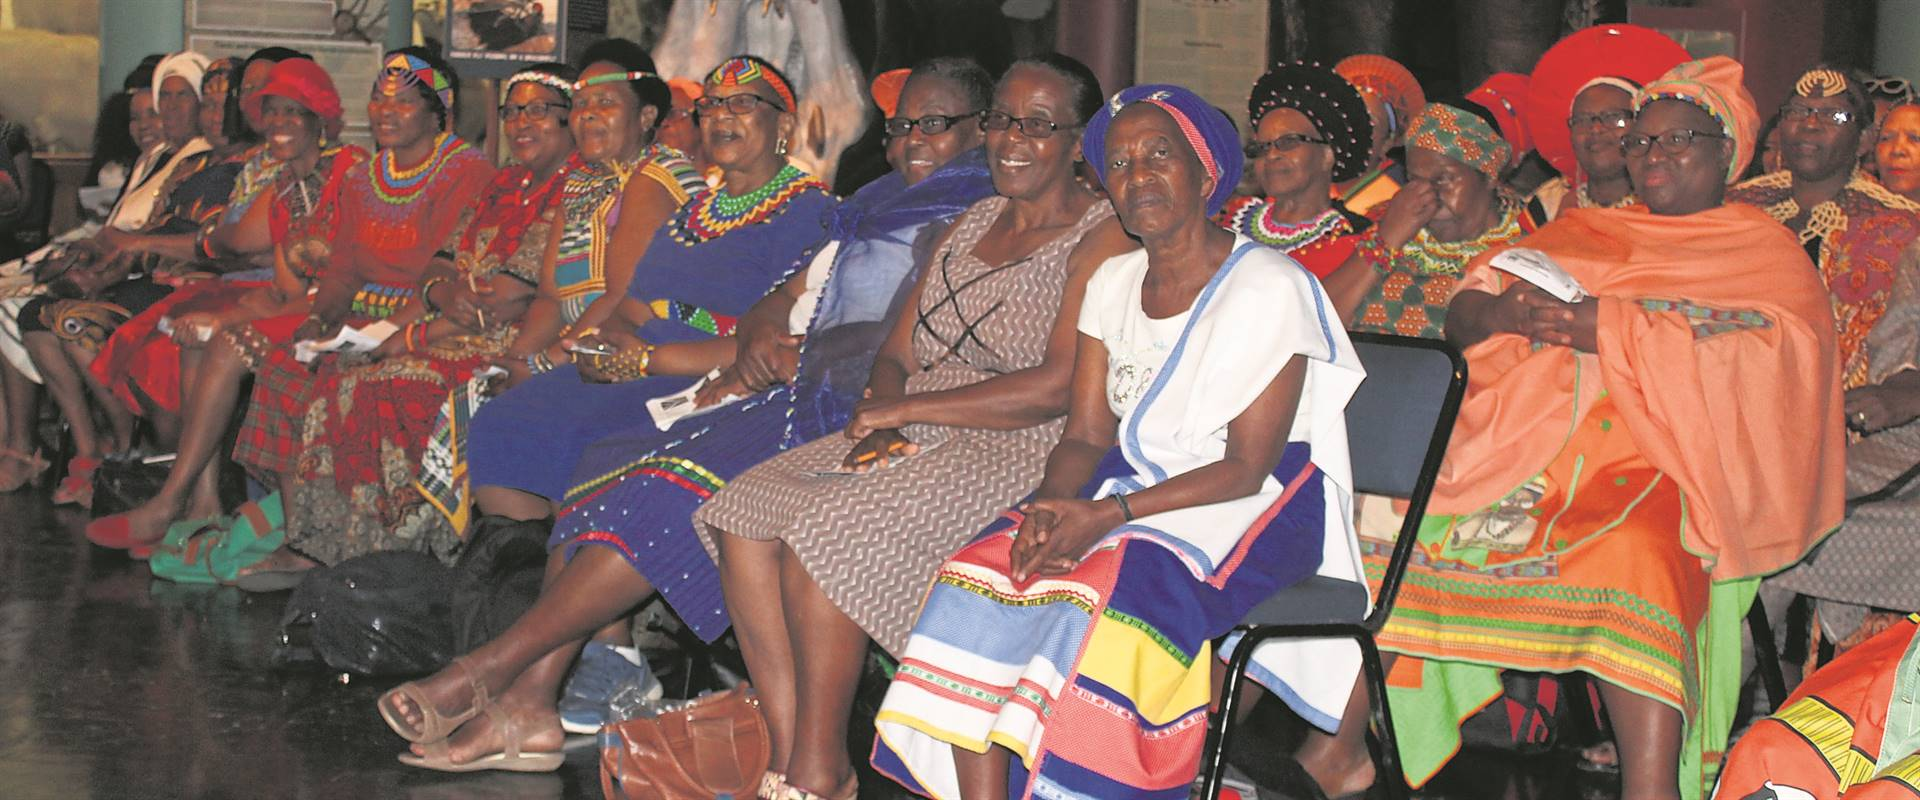 PHOTO: NTANDOYENKOSI DLAMINIPeople at the Heritage Day event at the KZN Museum.